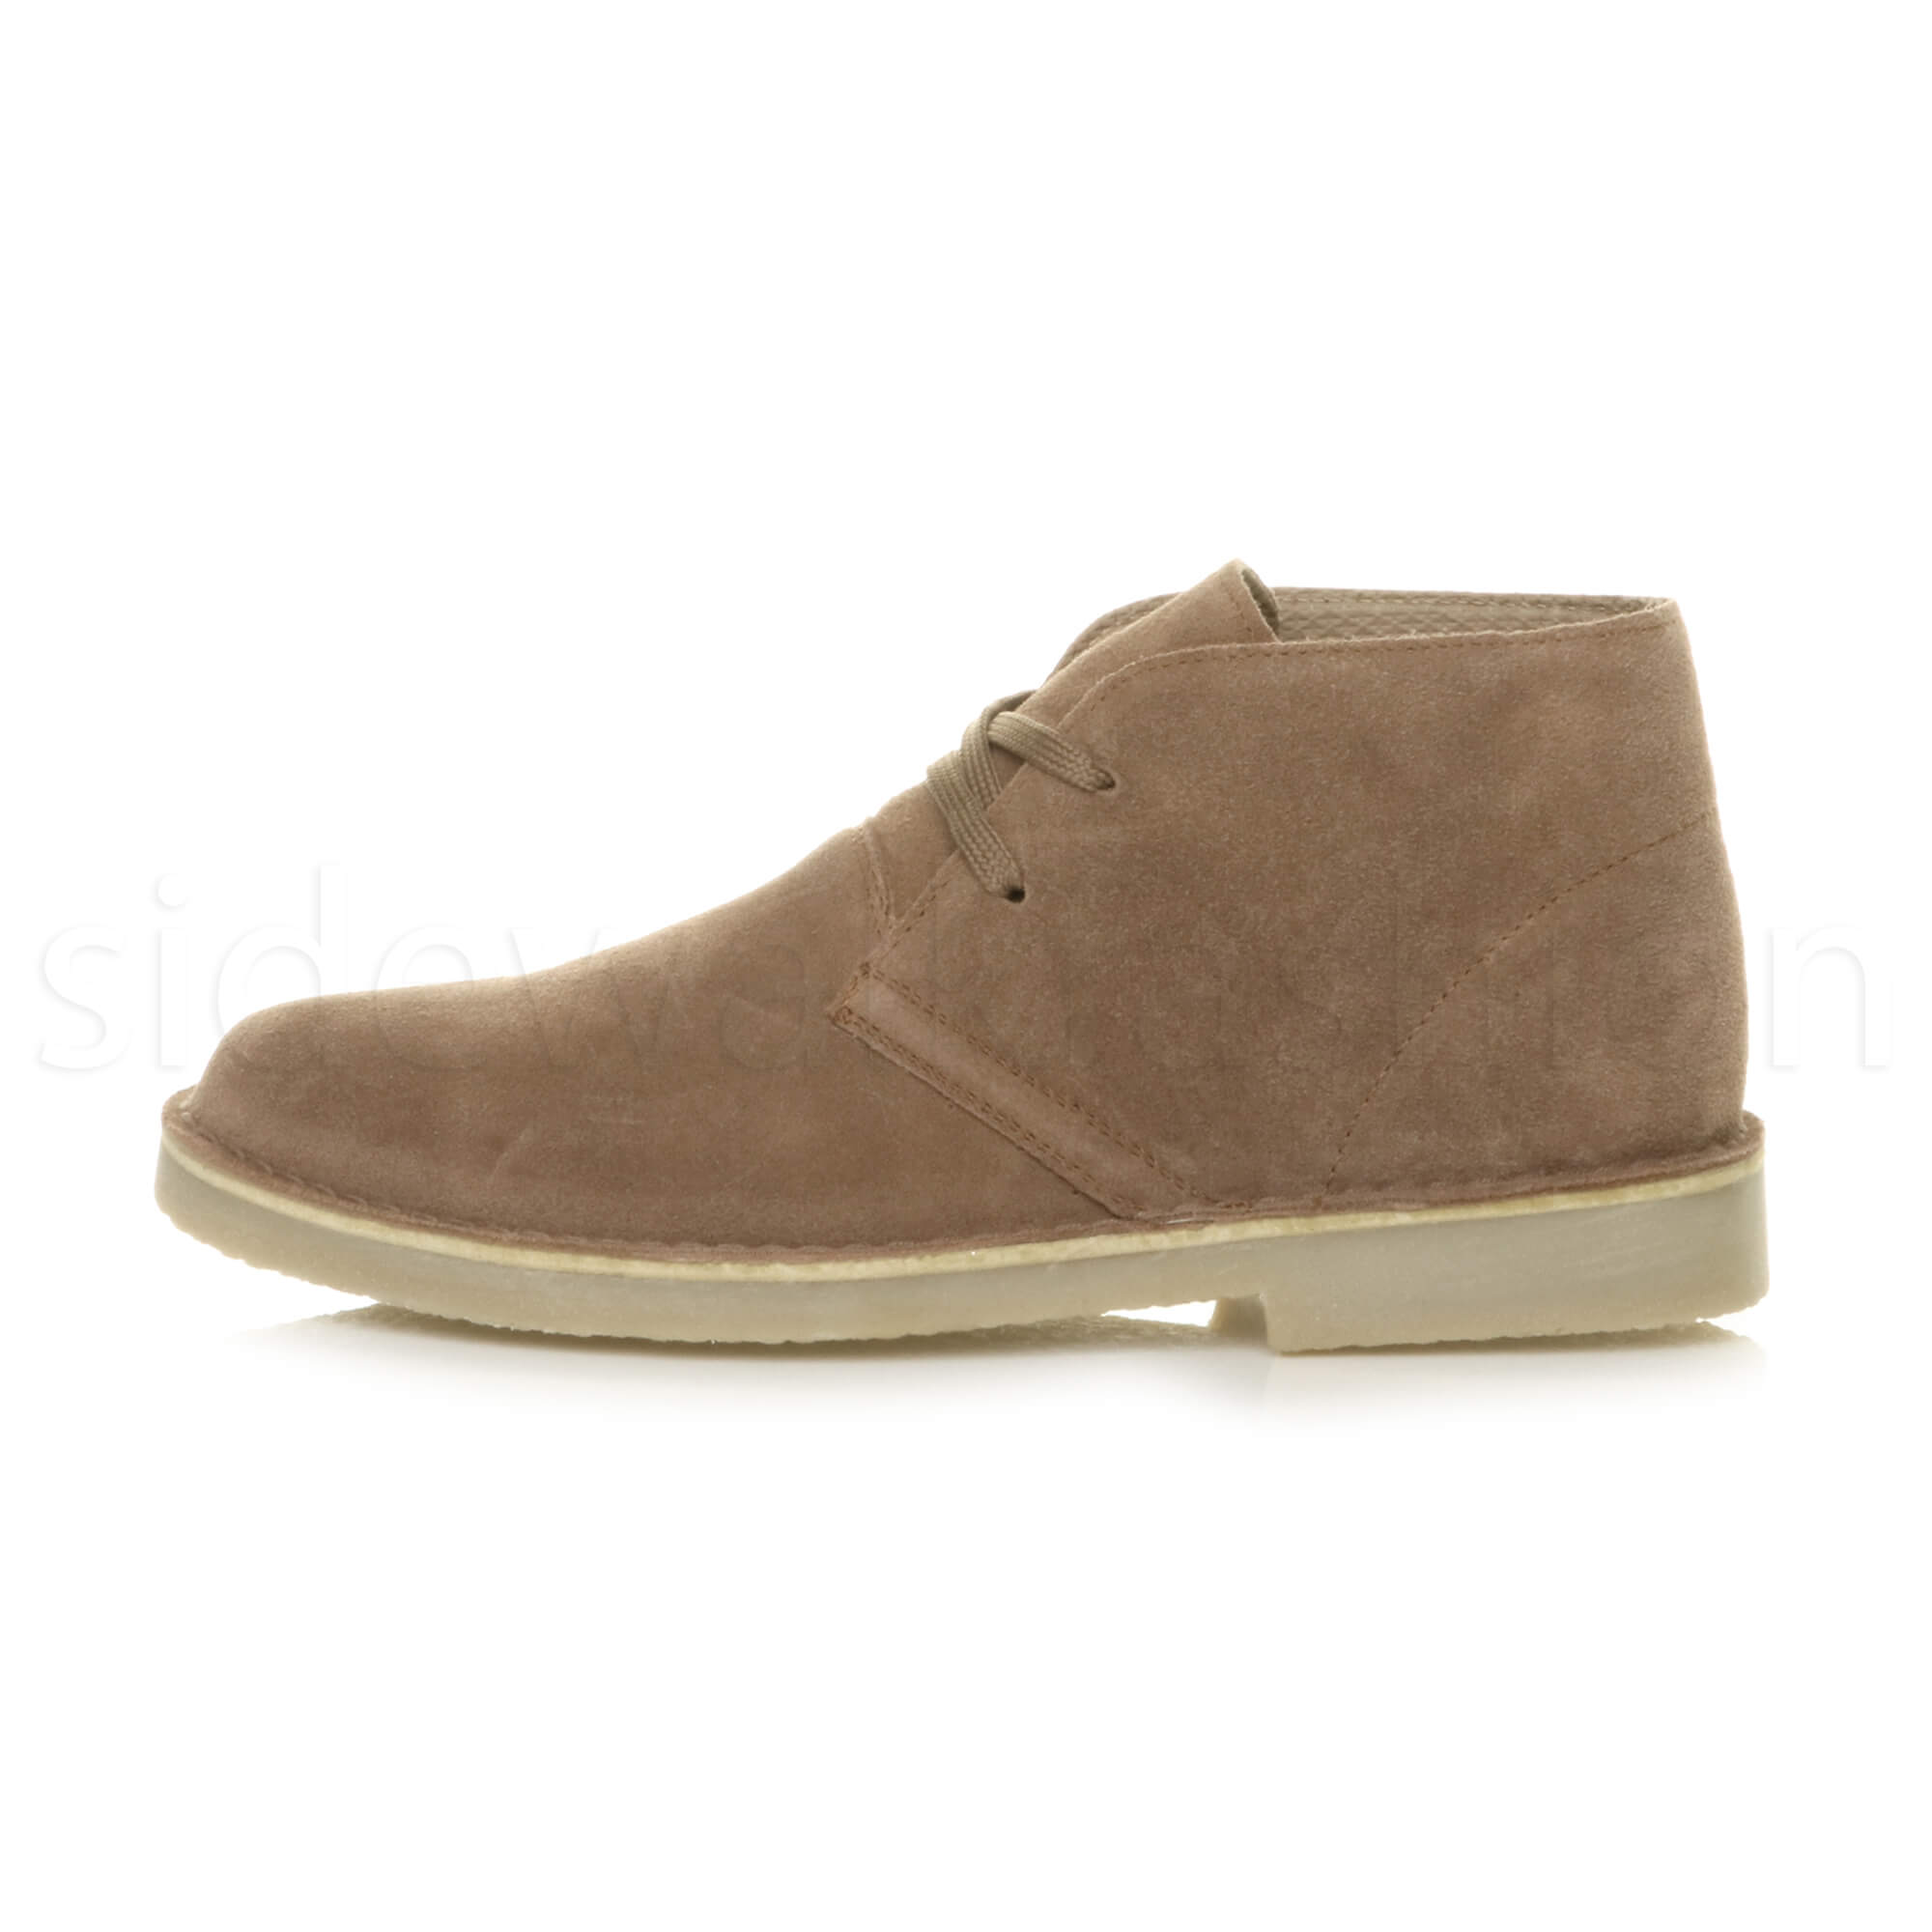 Mens-lace-up-rubber-sole-suede-ankle-chukka-desert-boots-classic-shoes-size thumbnail 32